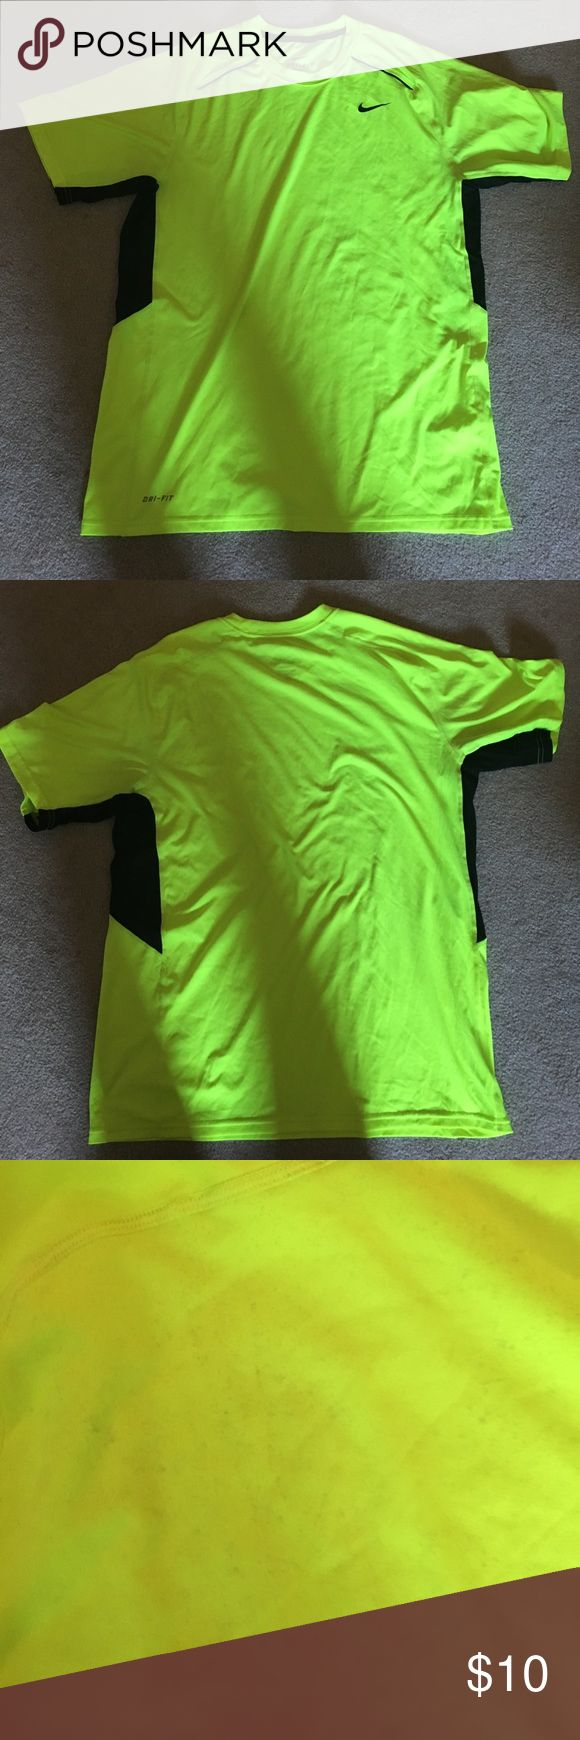 Nike Dri-Fit neon shirt. Size large Nice and light material. On the back of the shirt if you look closely there are black little dots but from a far you cannot notice them. Nike Shirts Tees - Short Sleeve